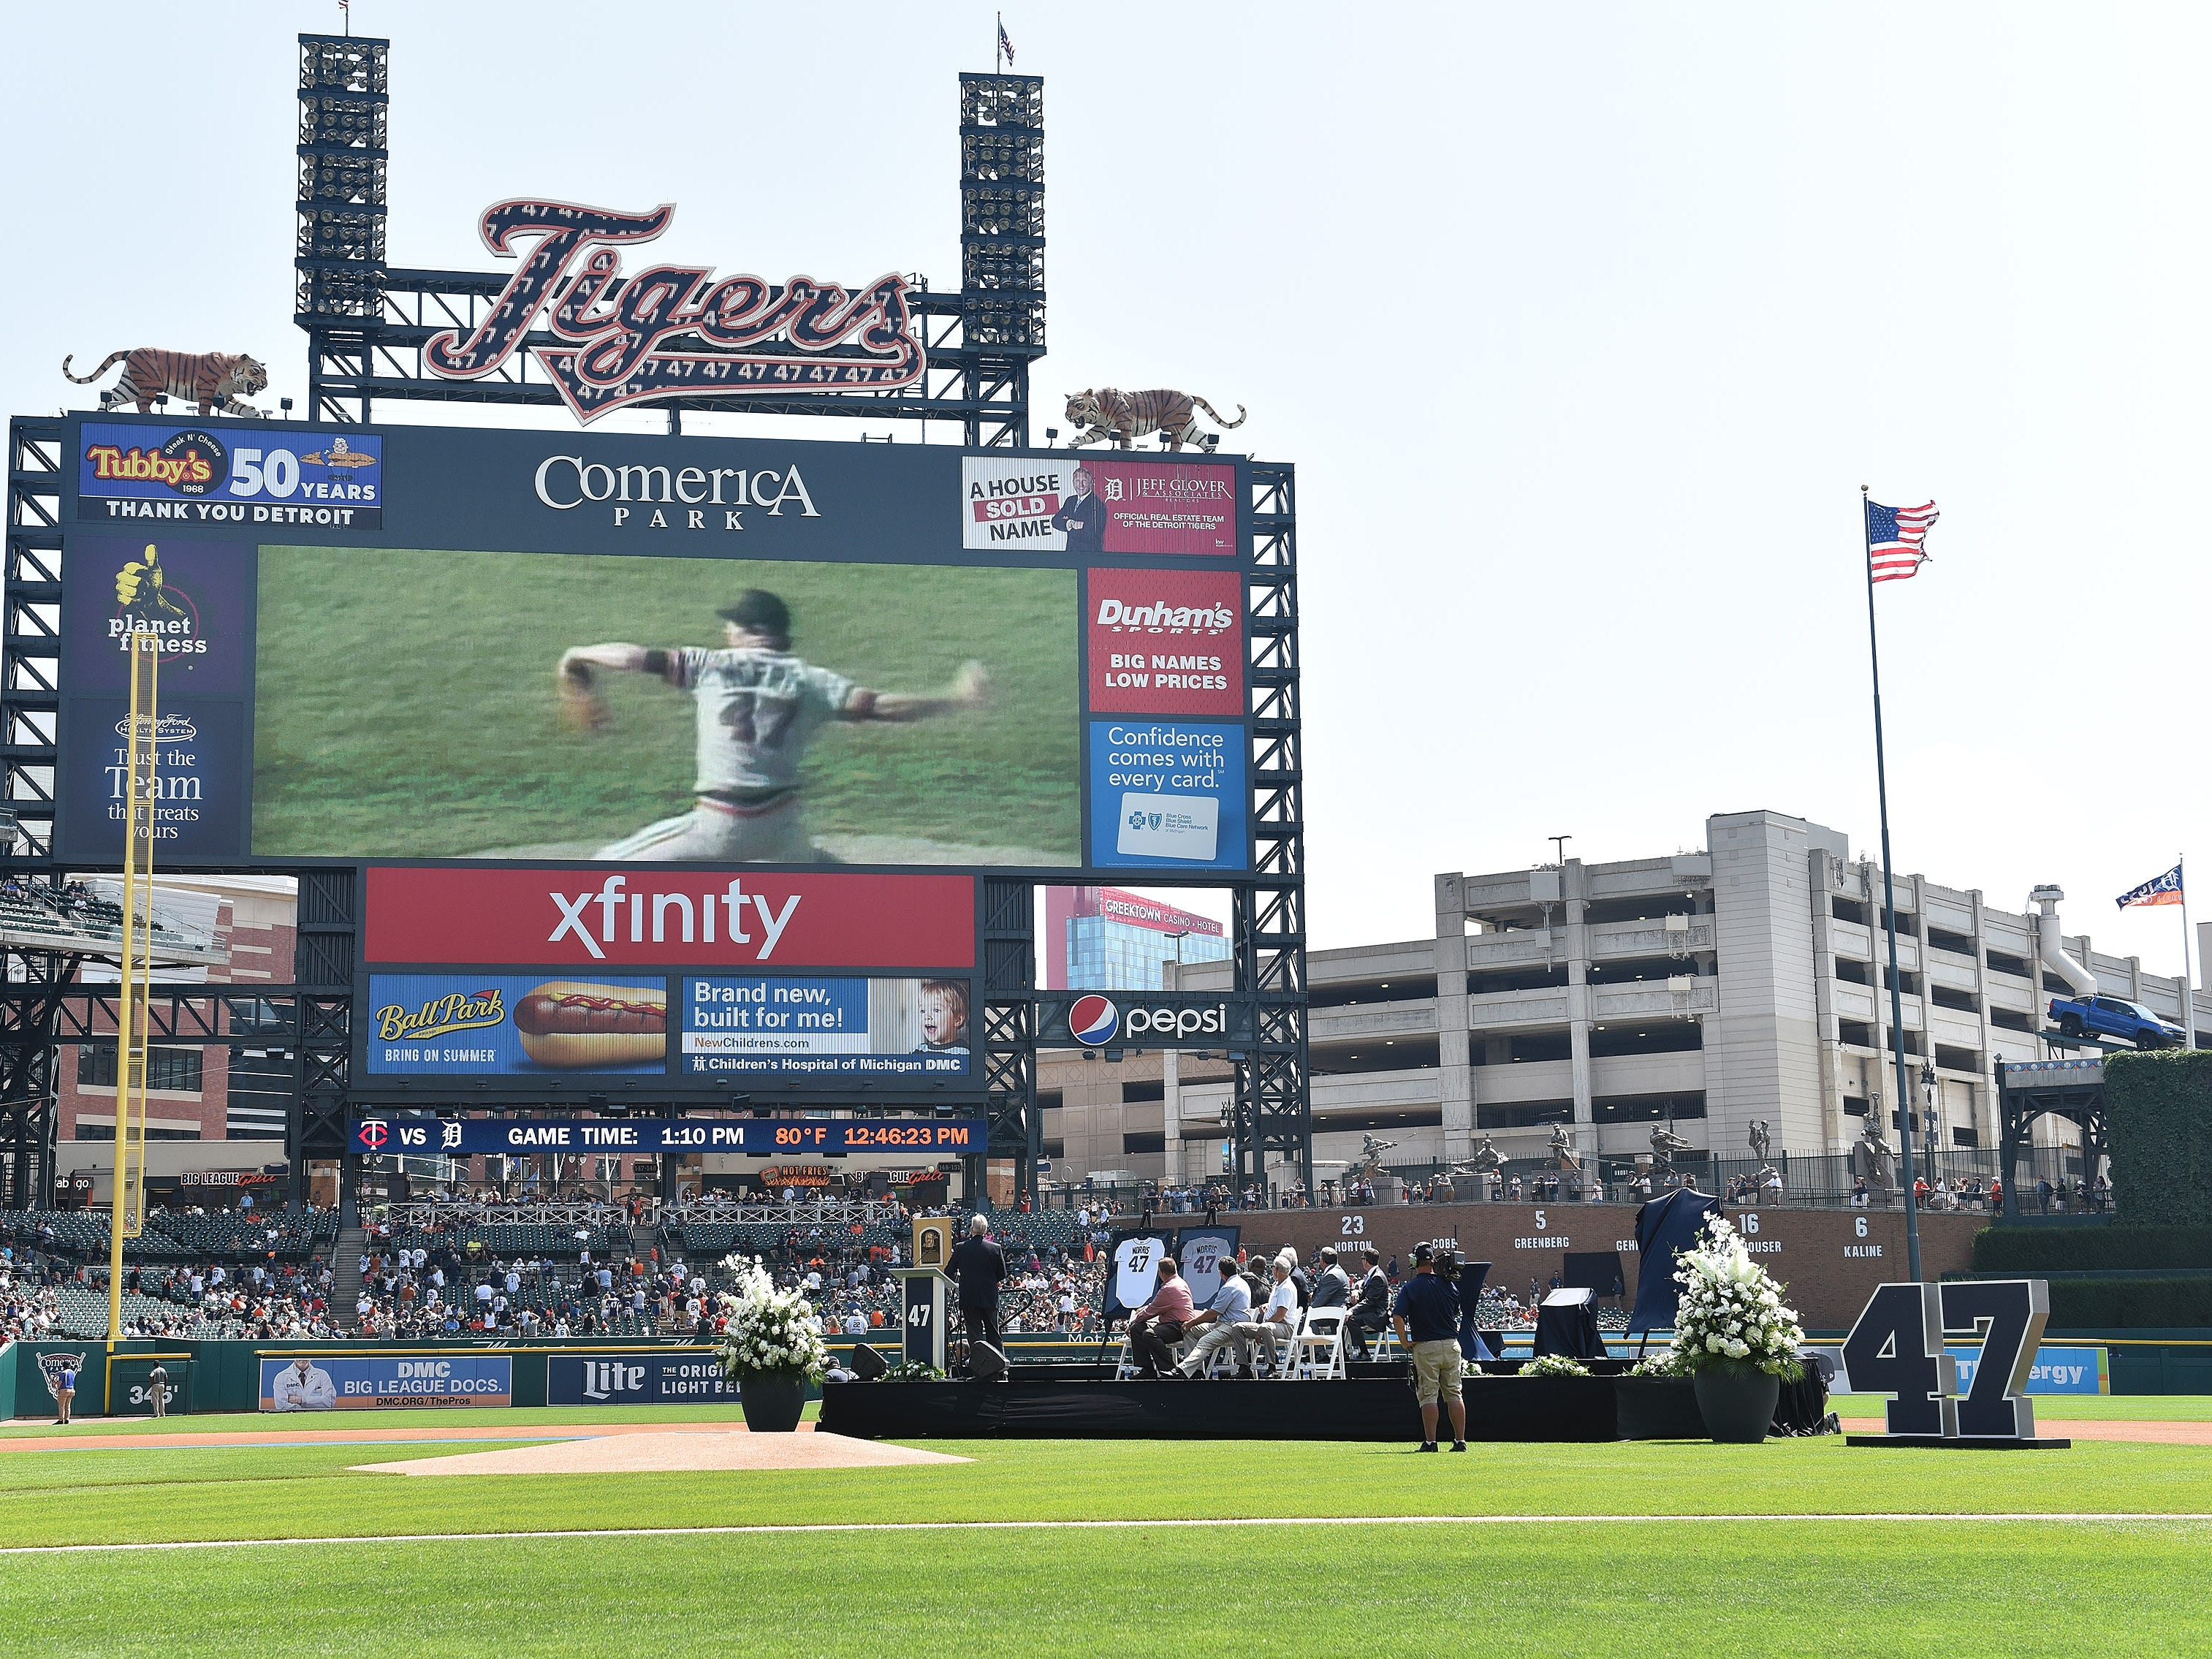 A video about Jack Morris plays on the scoreboard during the special pregame ceremony.